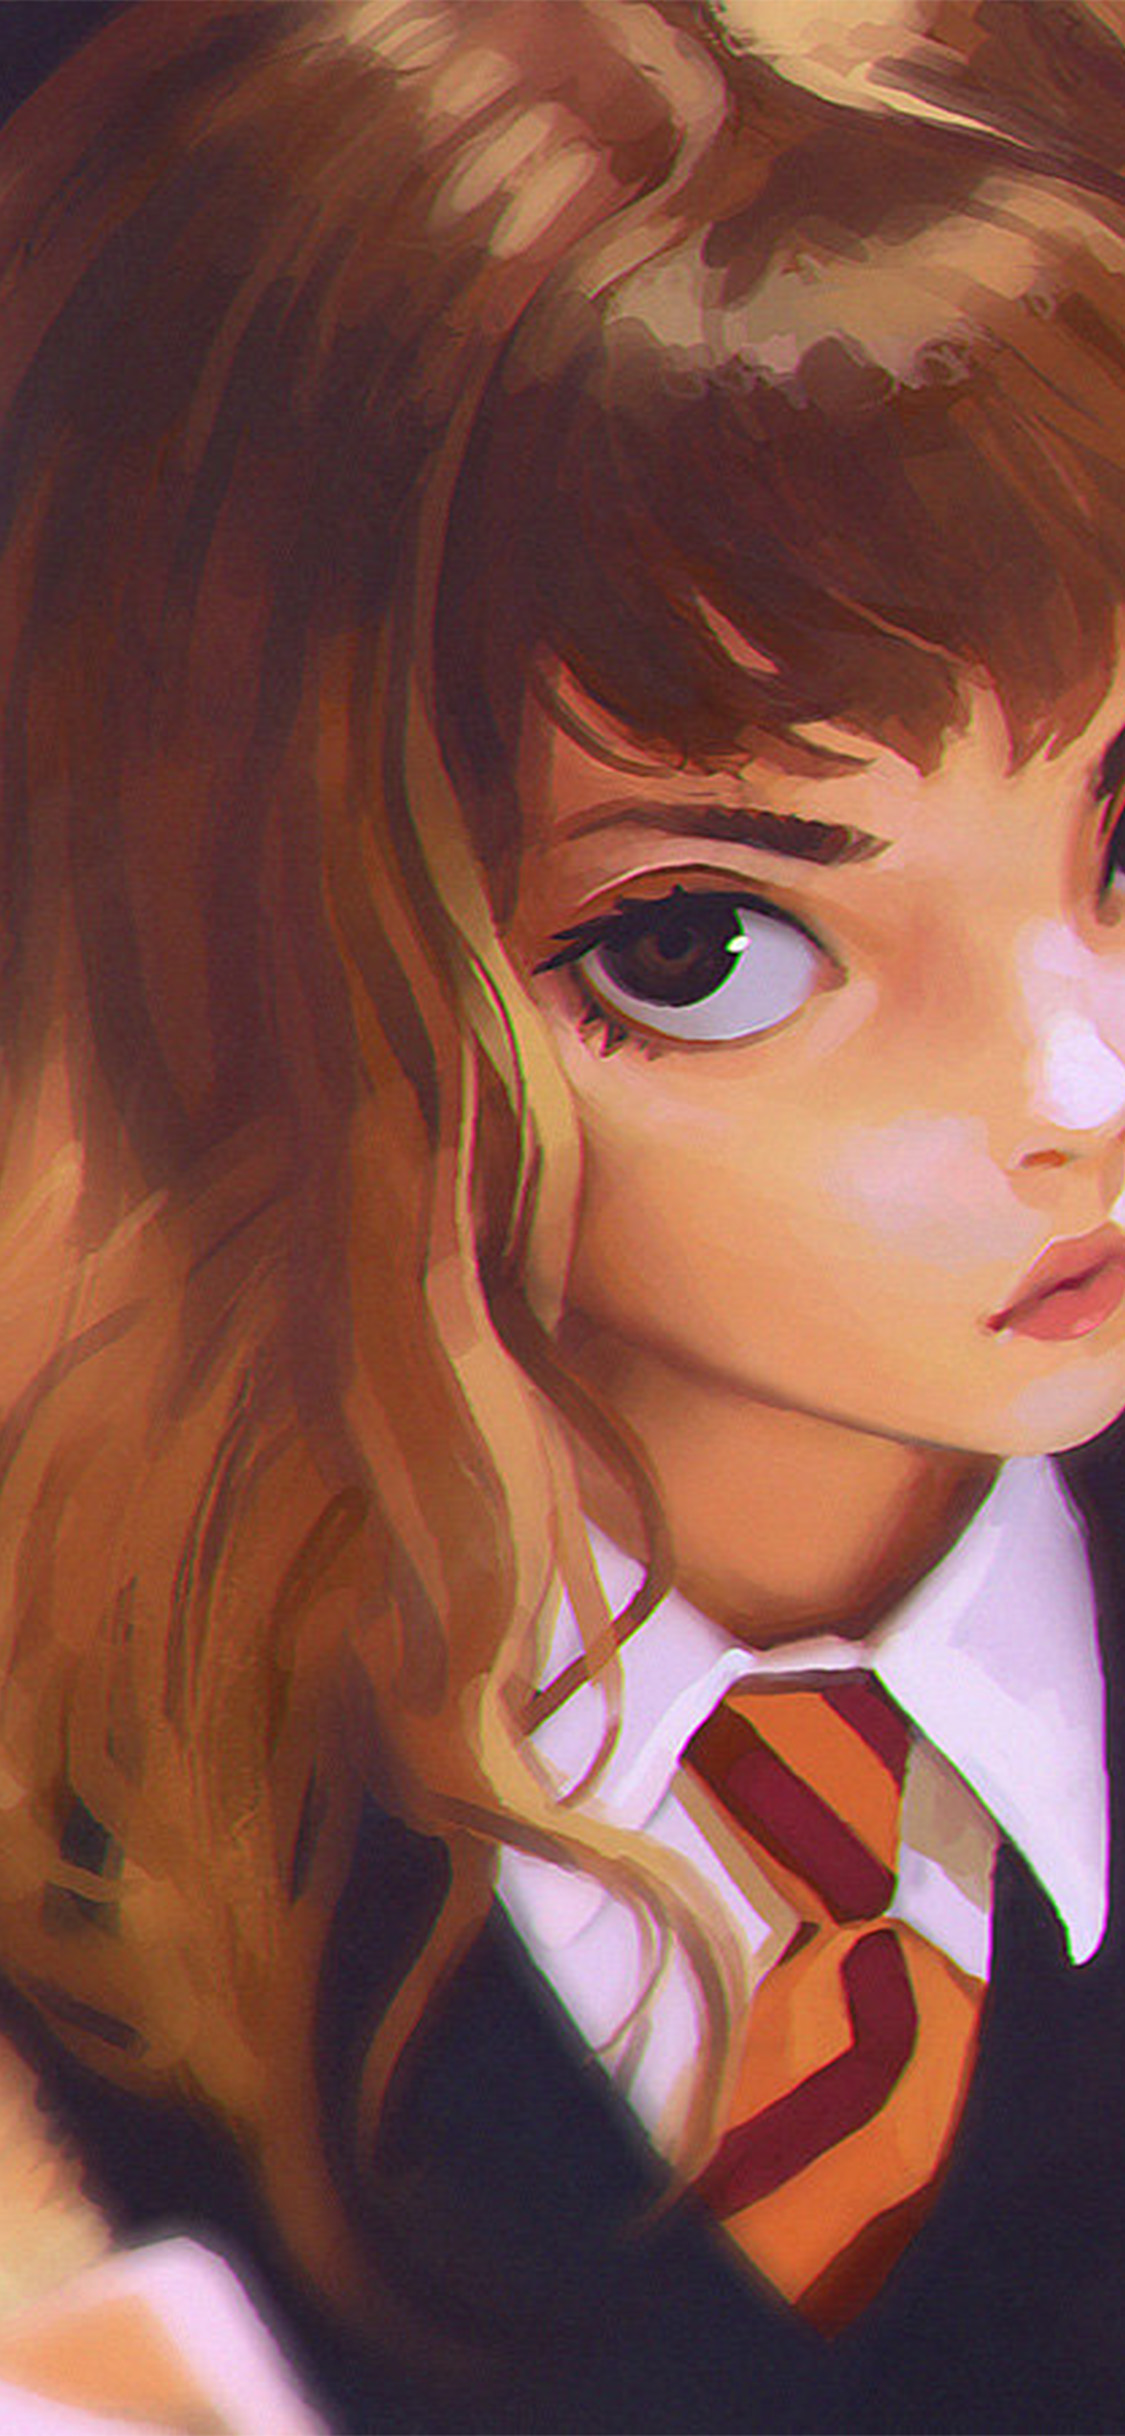 bd65-hermione-harry-potter-liya-art ...